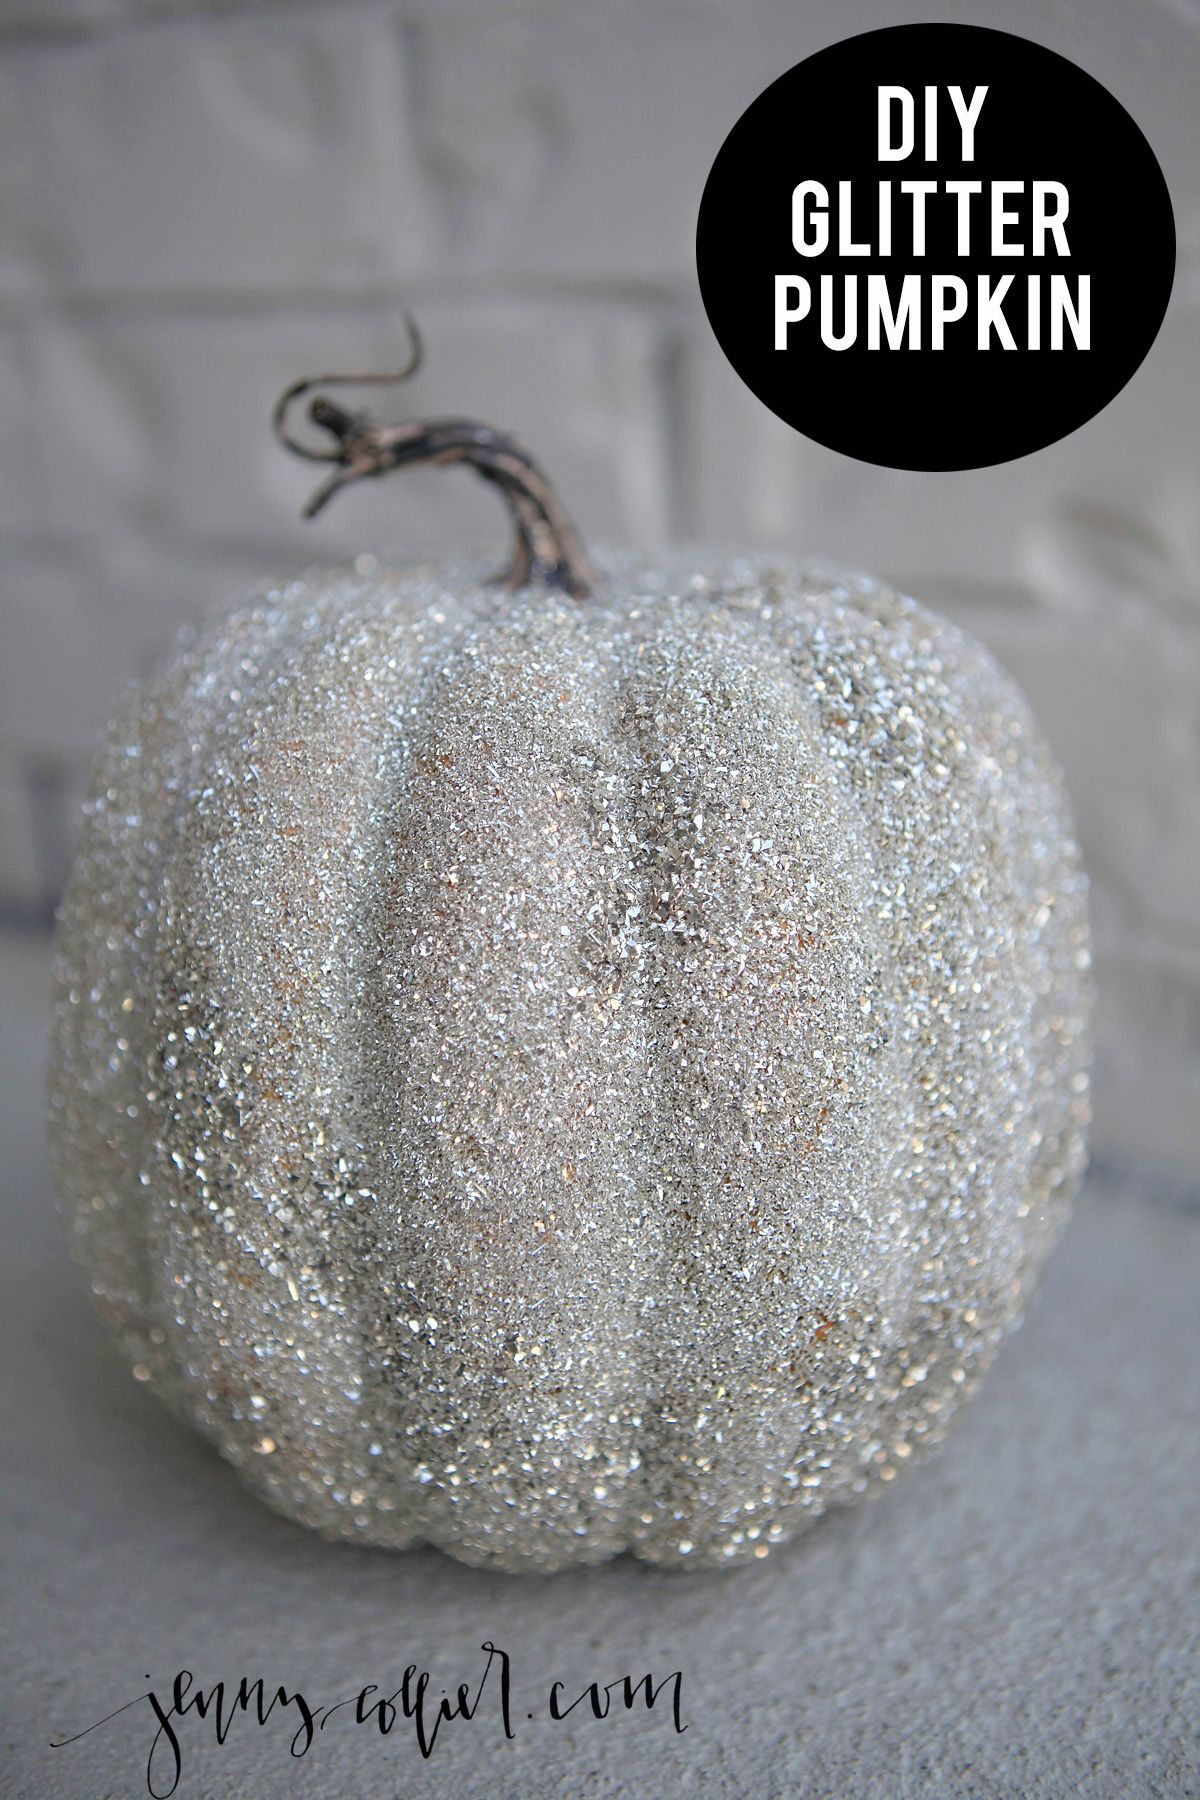 Diy Glitter Pumpkins With Images Glitter Pumpkins Glitter Diy Glitter Decor